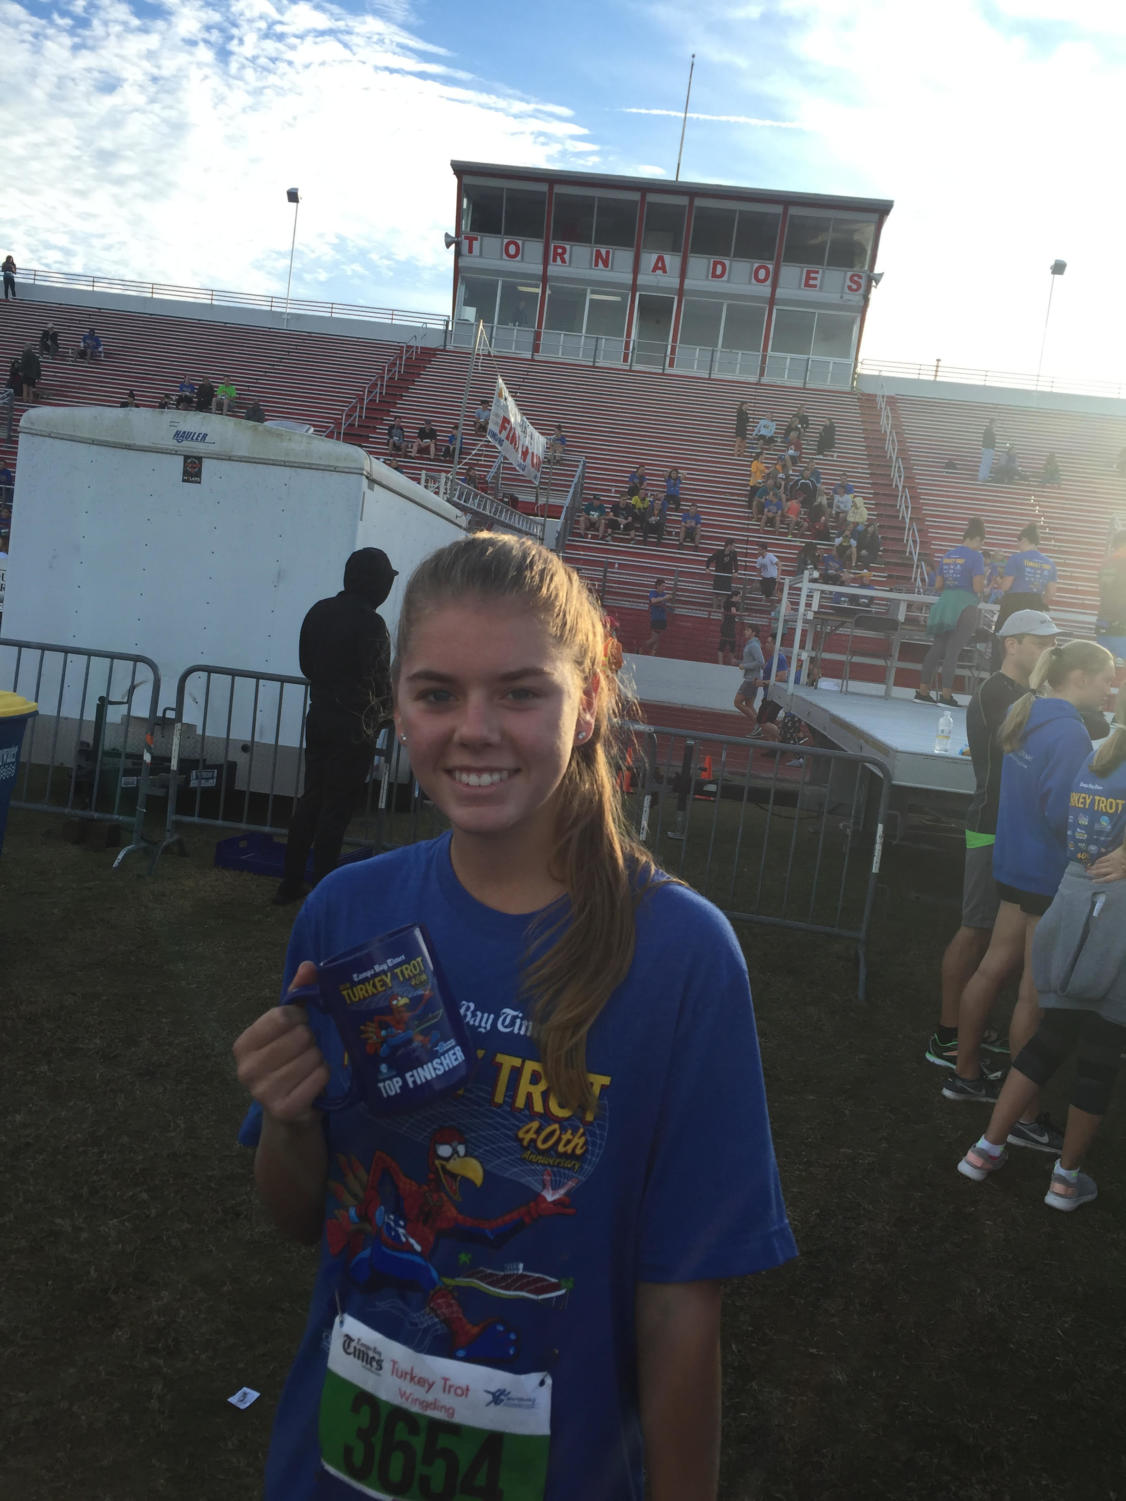 Brooke McGowan is a top finisher in one of last year's races.